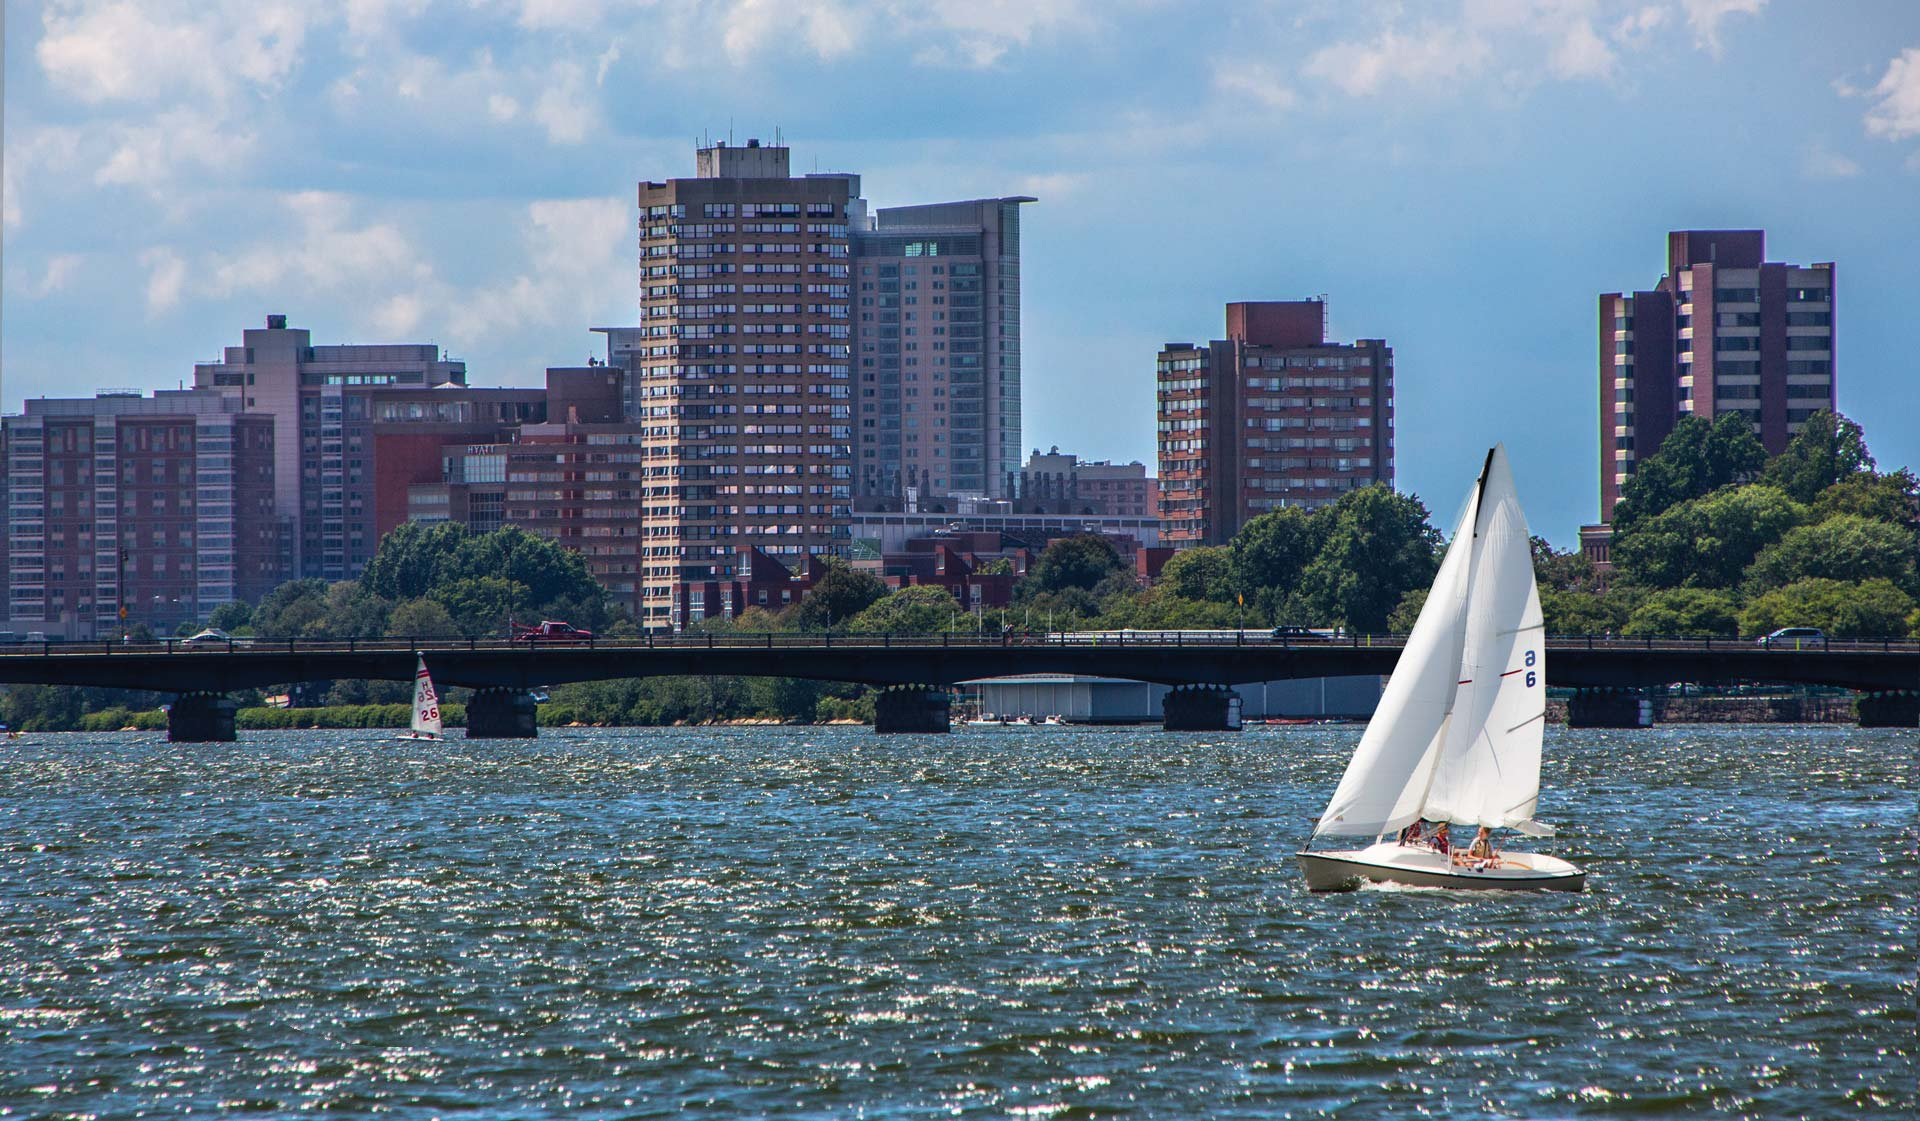 One Canal Apartment Homes - Boston, MA - Sailboat on Charles River